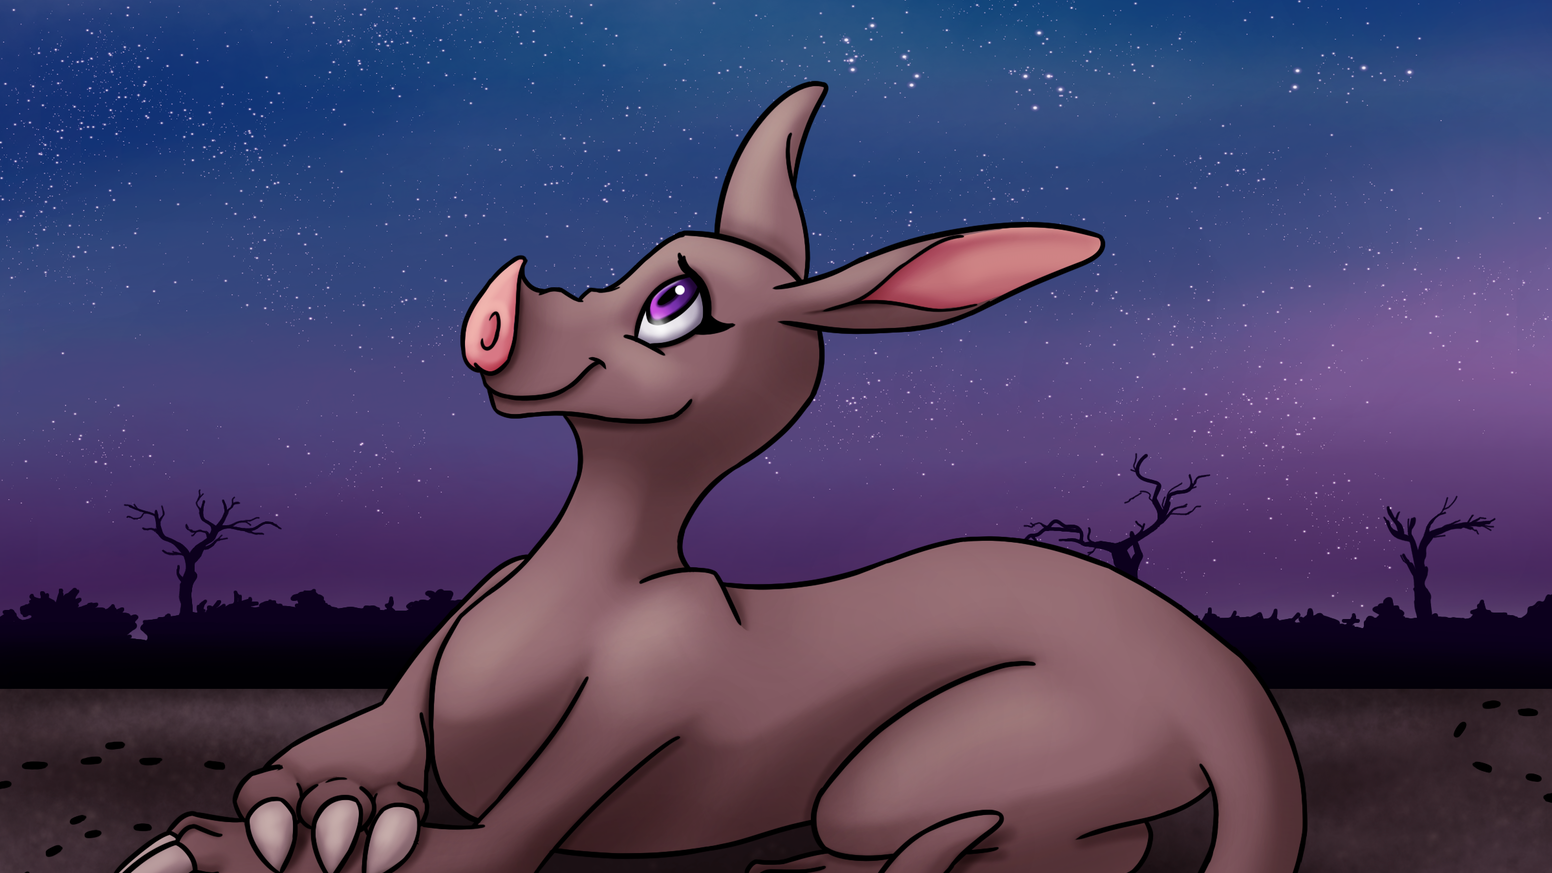 The Kickstarter for Annie Aardvarks: Adding Ants is concluded, but you can follow the Annie Aardvark series by clicking the button below. Thank you for all of your support!